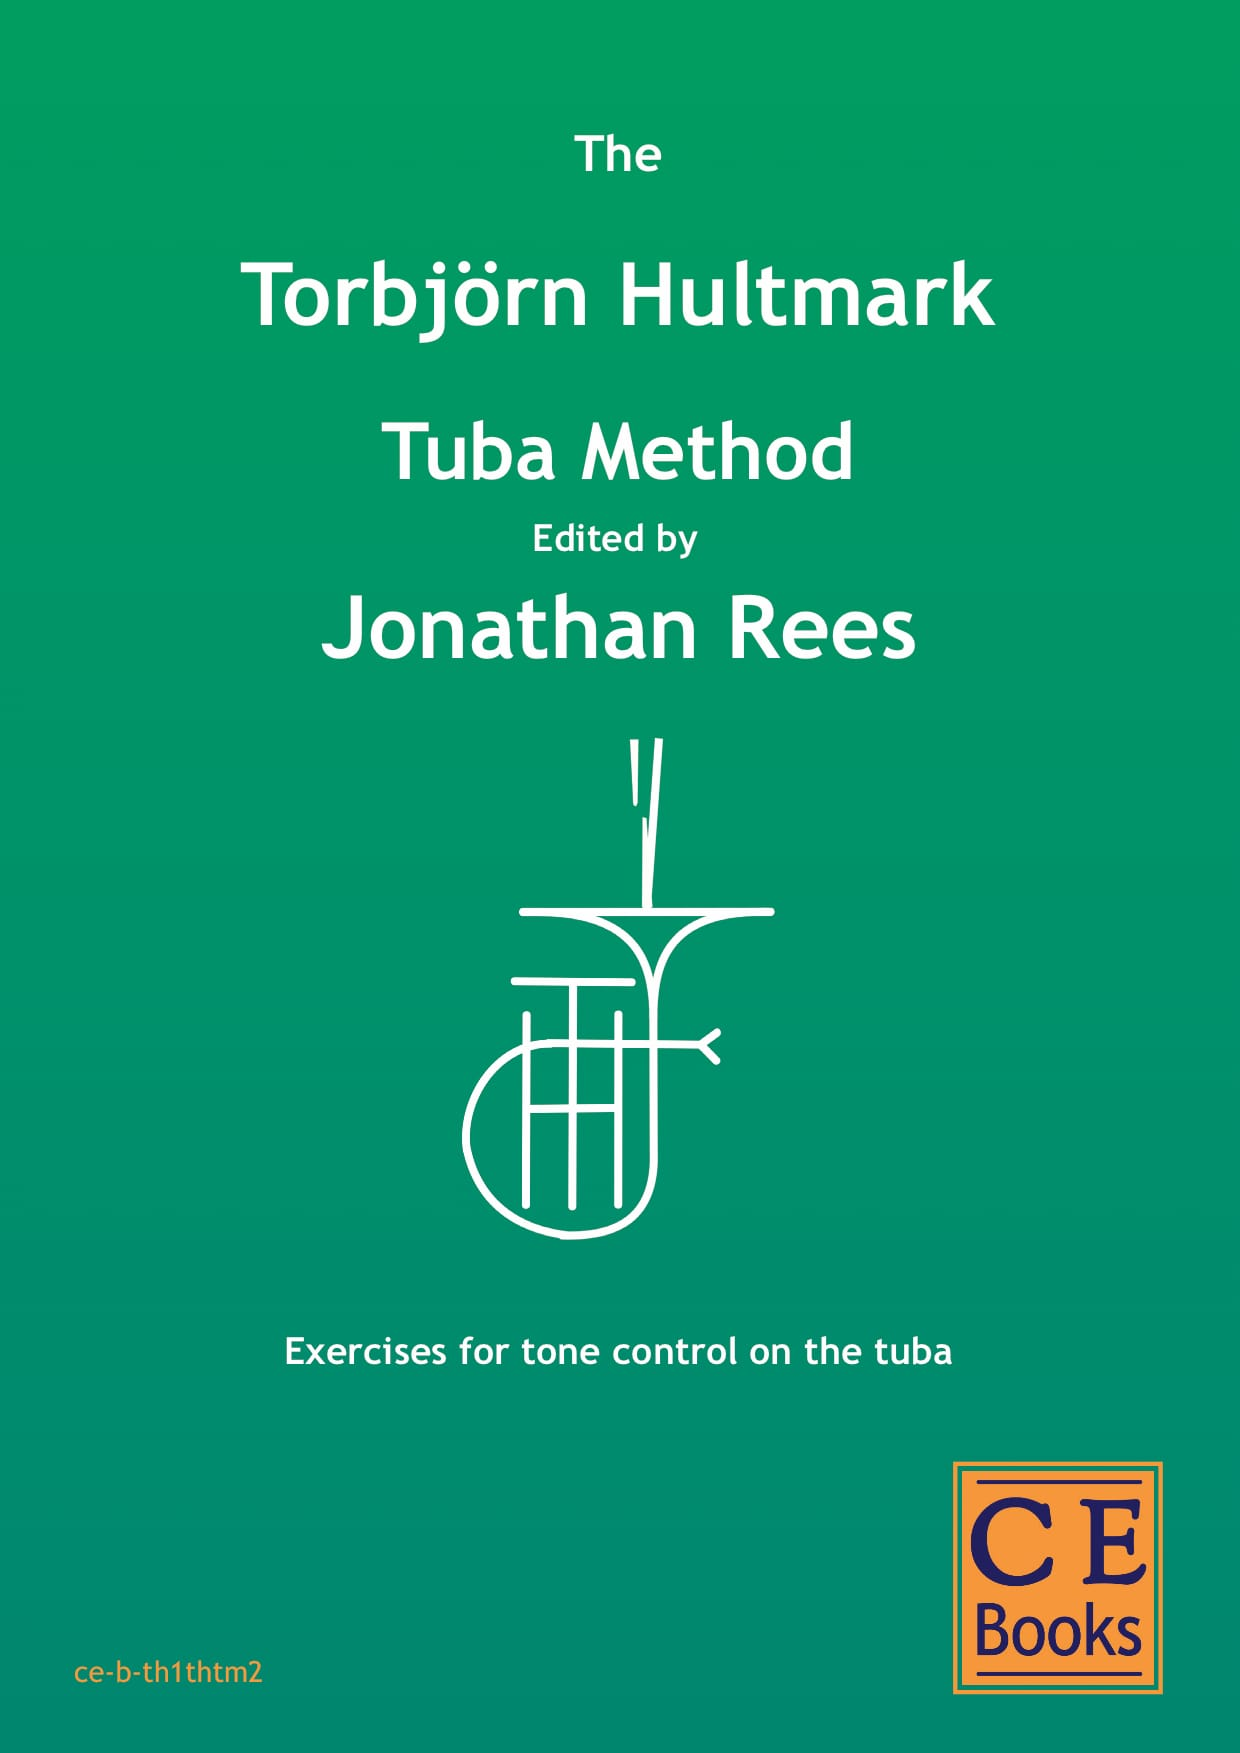 Torbjörn Hultmark: The Torbjörn Hultmark Tuba Method Exercises for tone control on the tuba